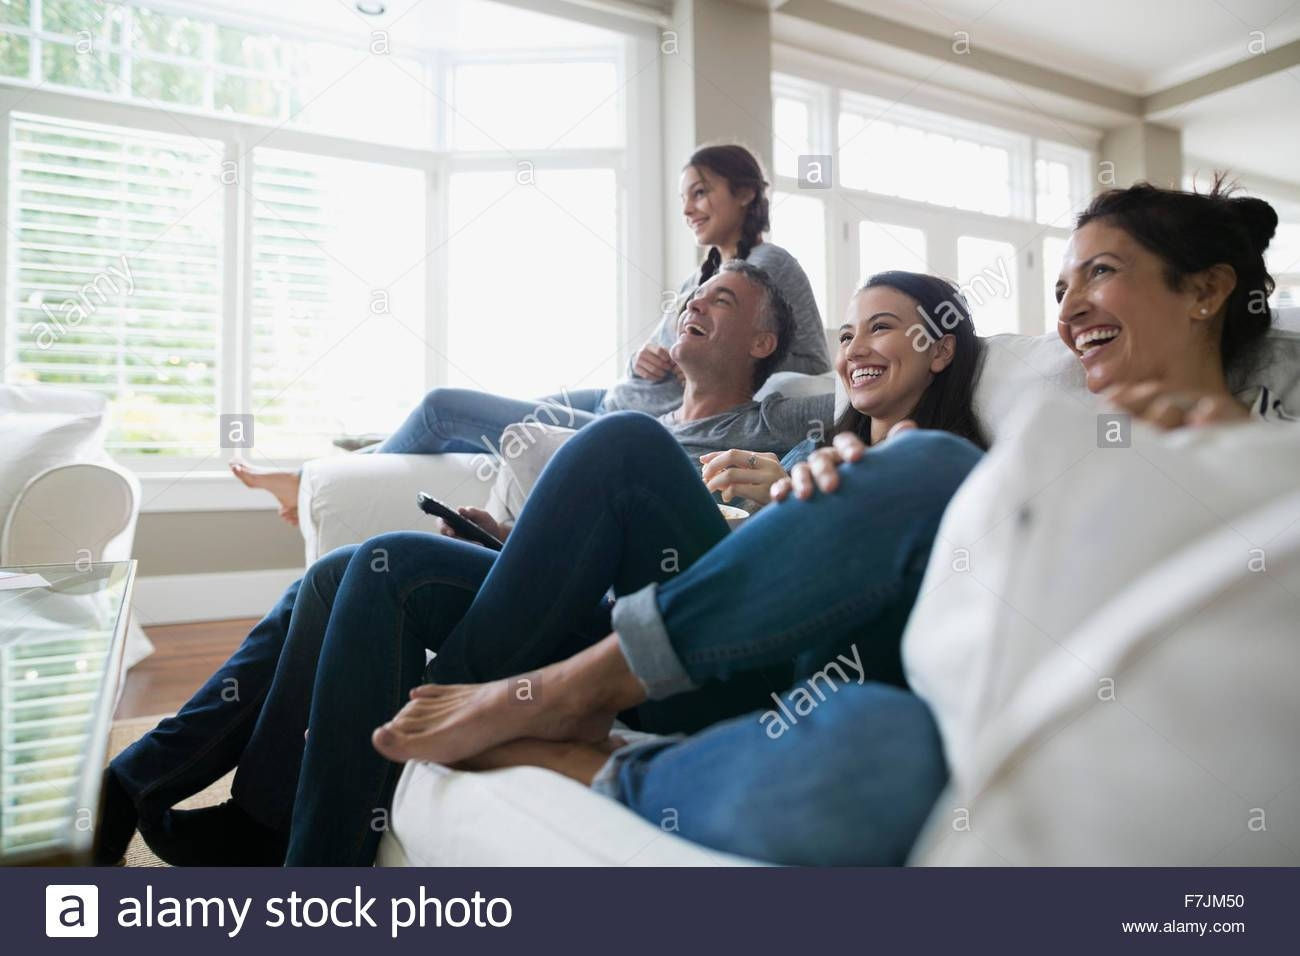 Family Sitting On Sofa Stock Photos & Family Sitting On Sofa Stock intended for Family Sofa (Image 9 of 30)